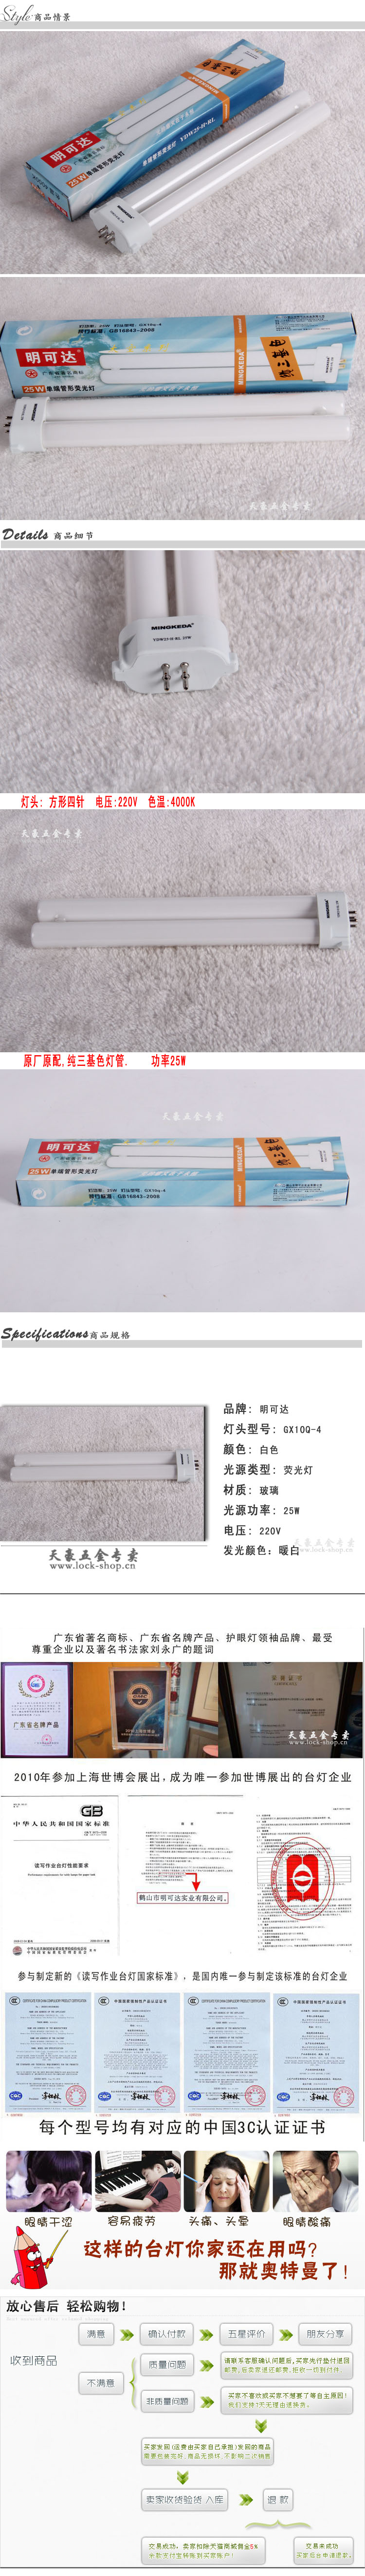 Genuine clear up eye lamp MT001Y MT2003Y square four-pin 25W special lamp Eye